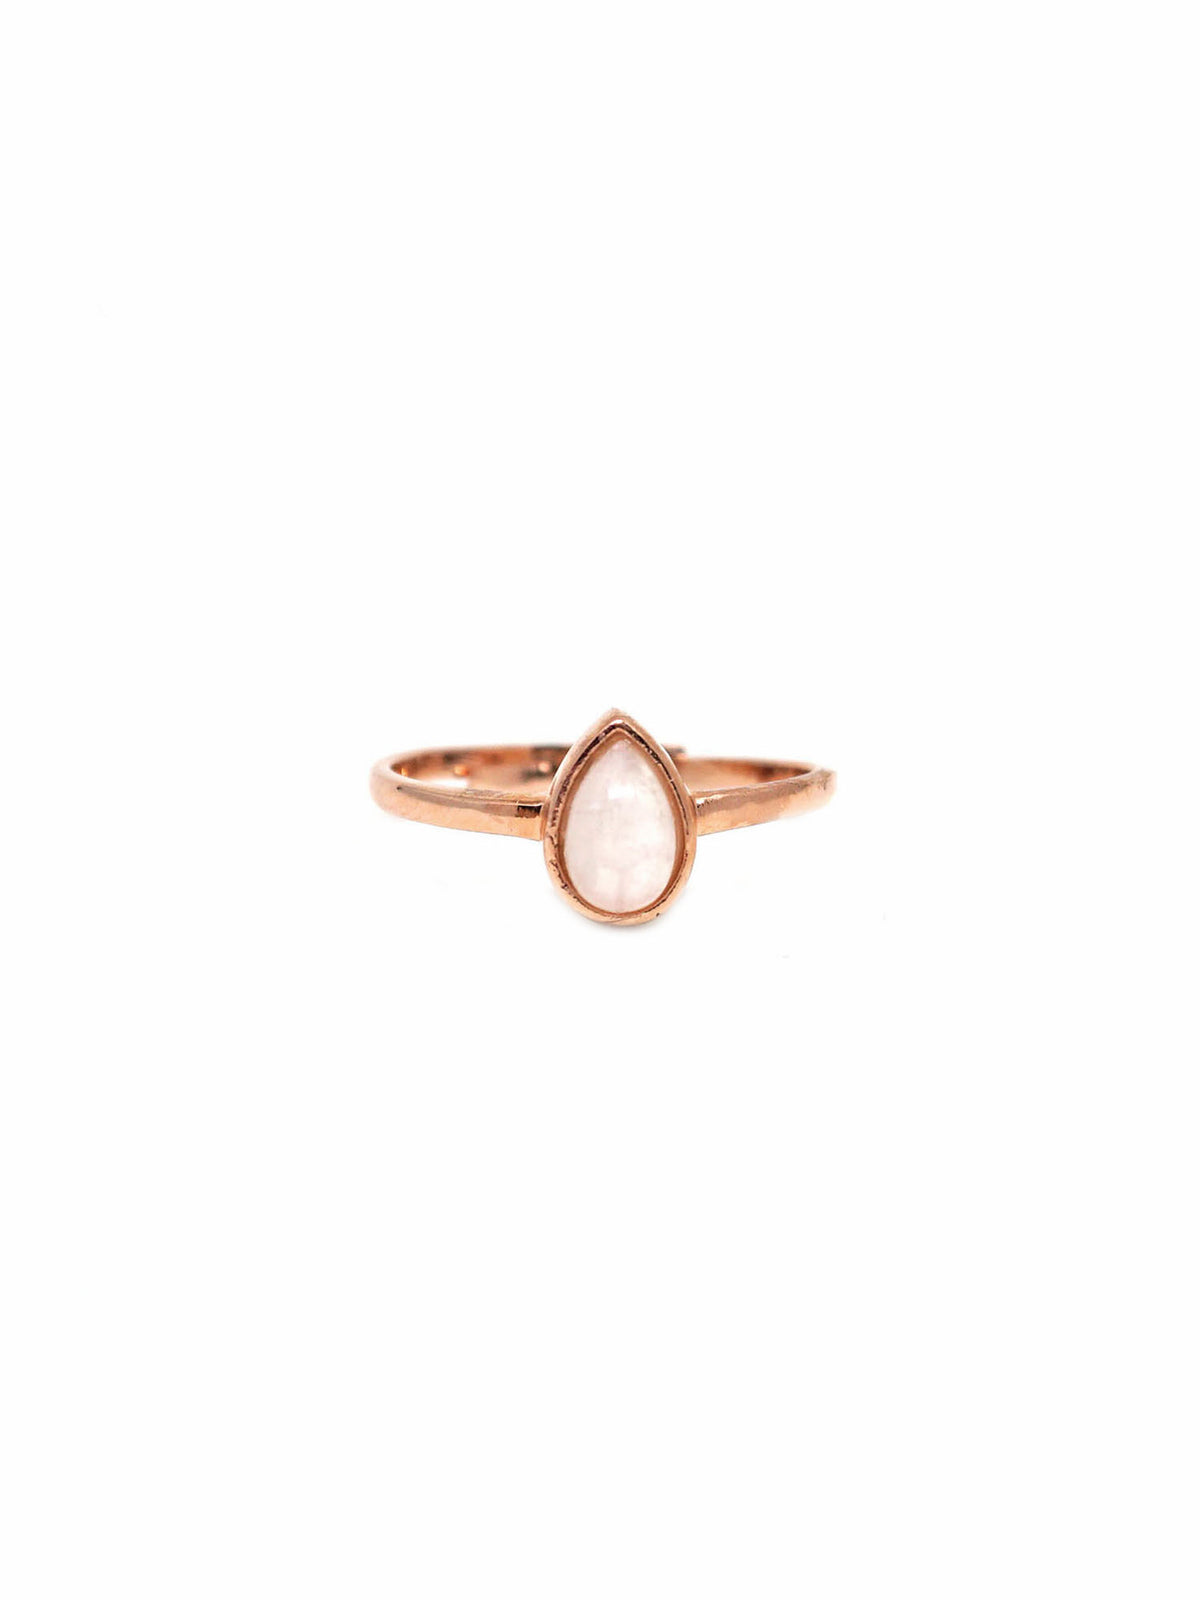 Dew Drop Ring - Rose Gold - Moonstone